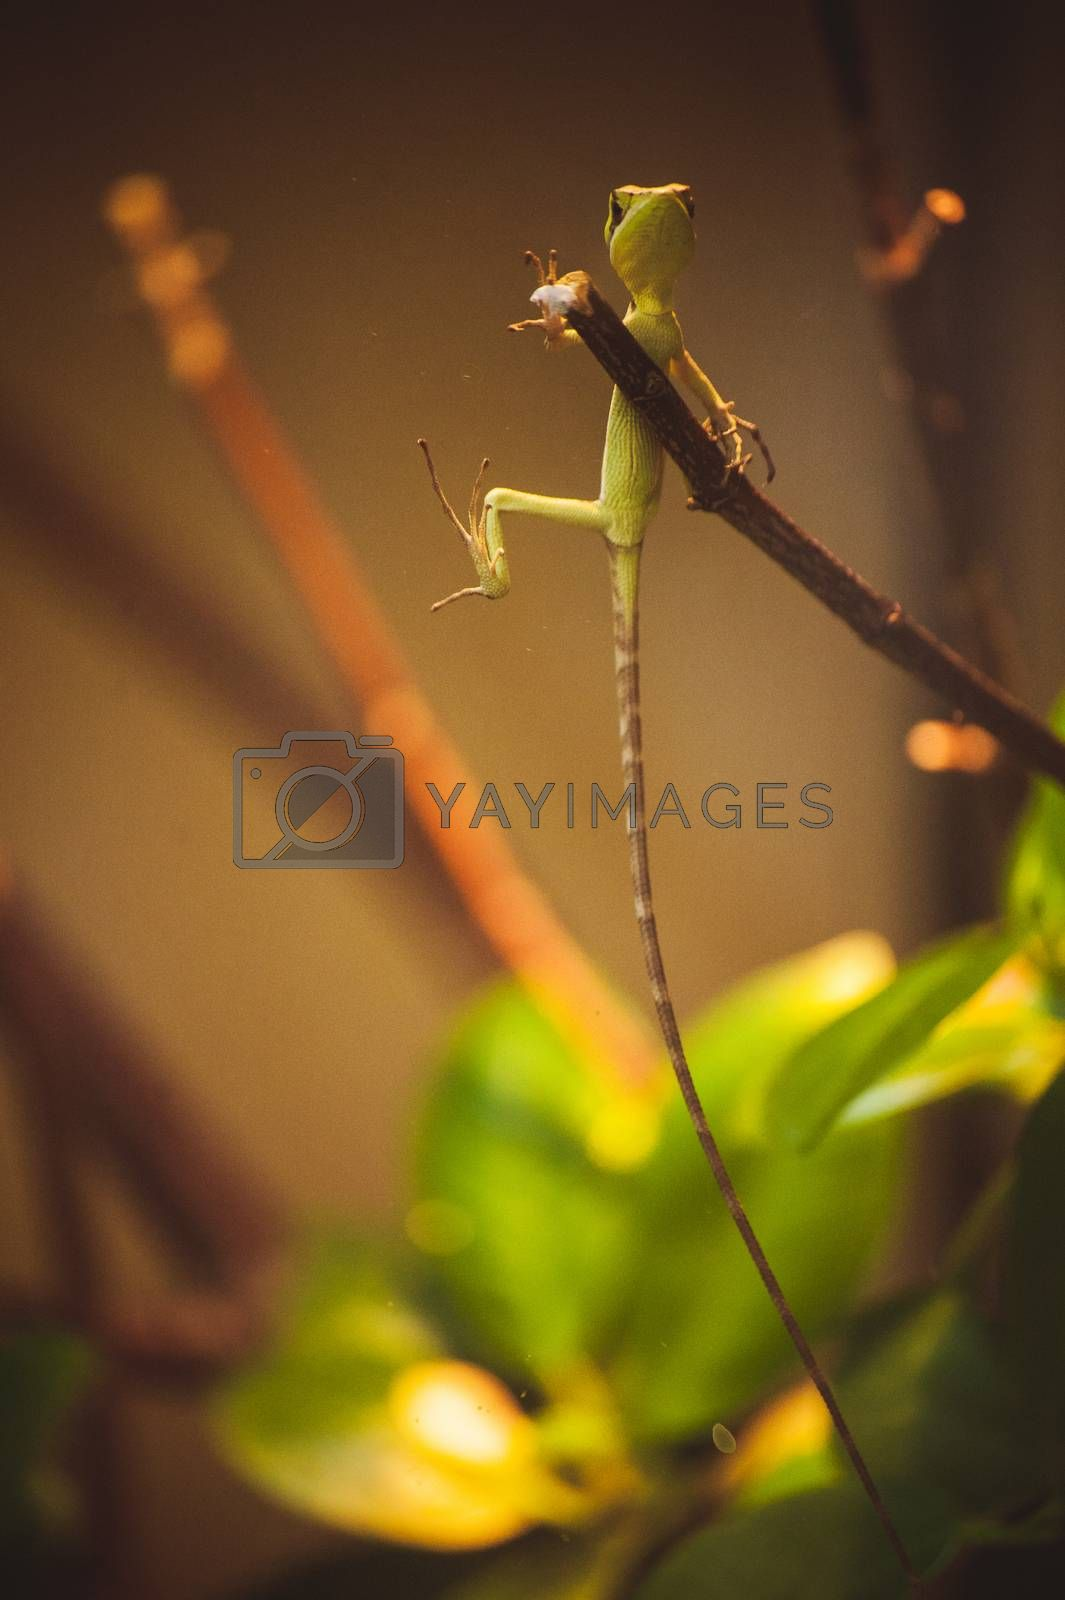 green lizard with very long tail on branch